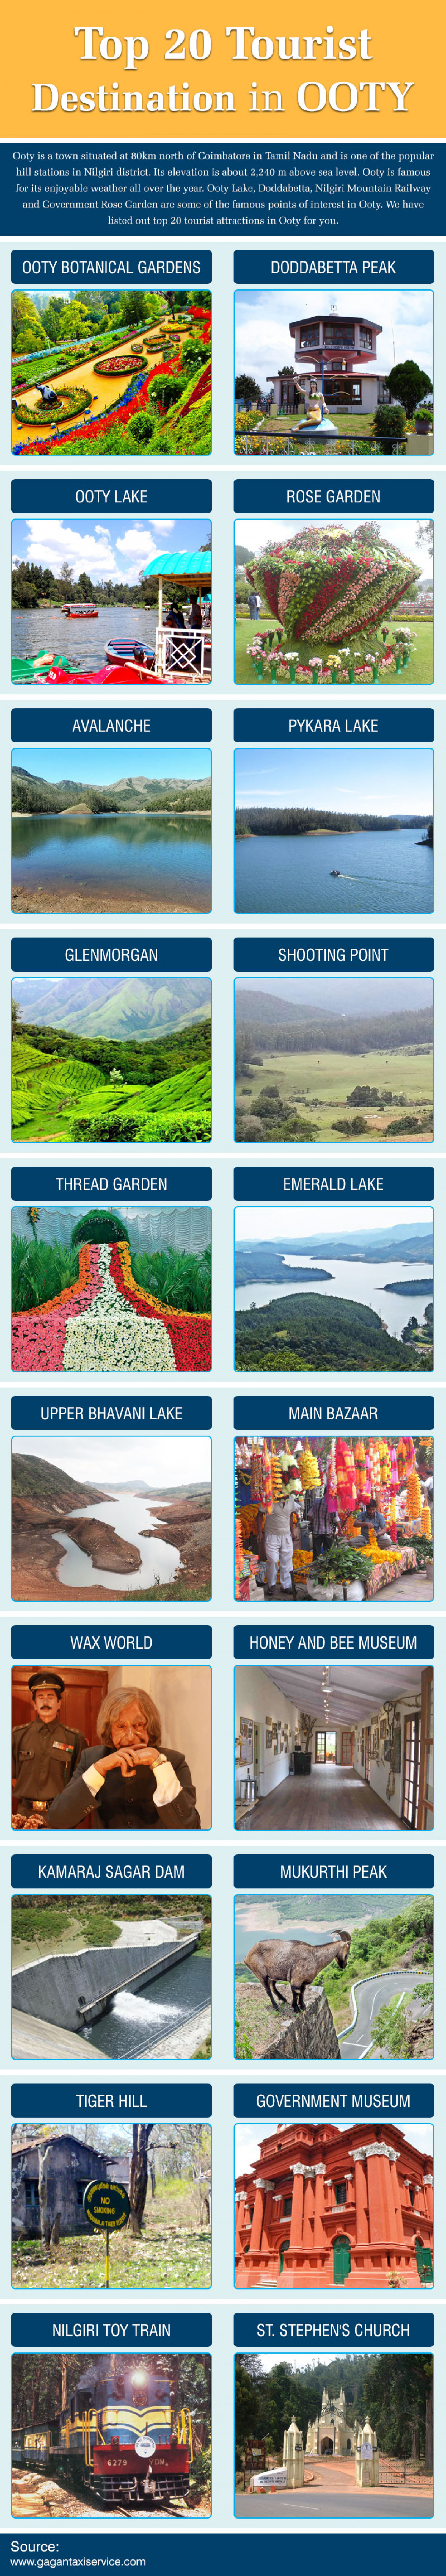 Famous Tourist Destinations in Ooty Infographic